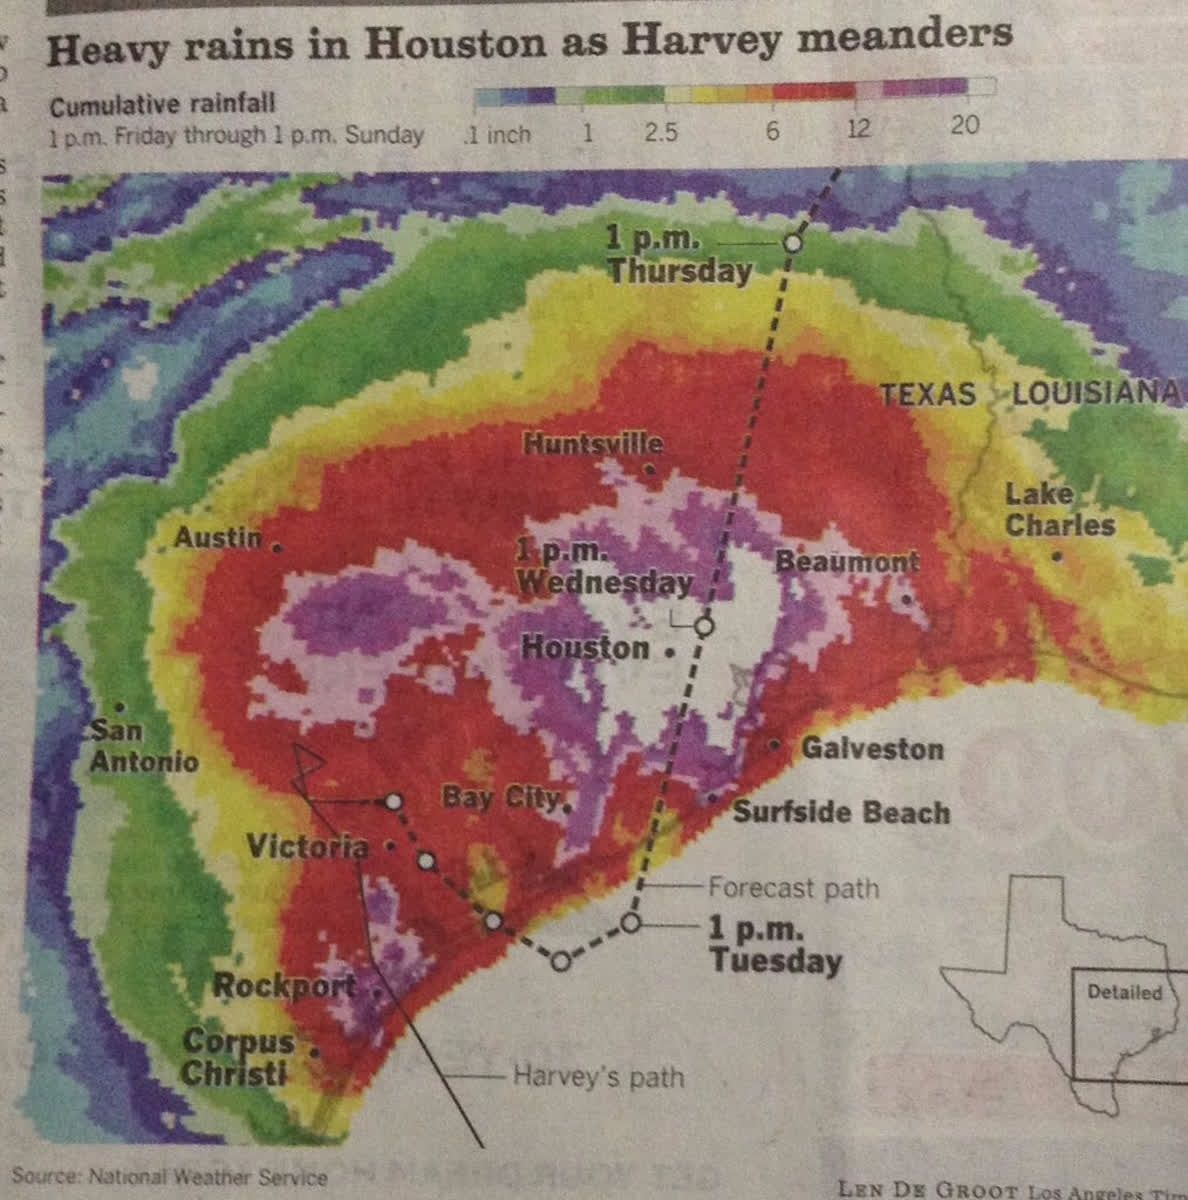 Our Thoughts And Prayers Are With Everyone Affected By Hurricane Harvey Harveyflood Houstonstrong Surfside Beach Galveston Lake Charles